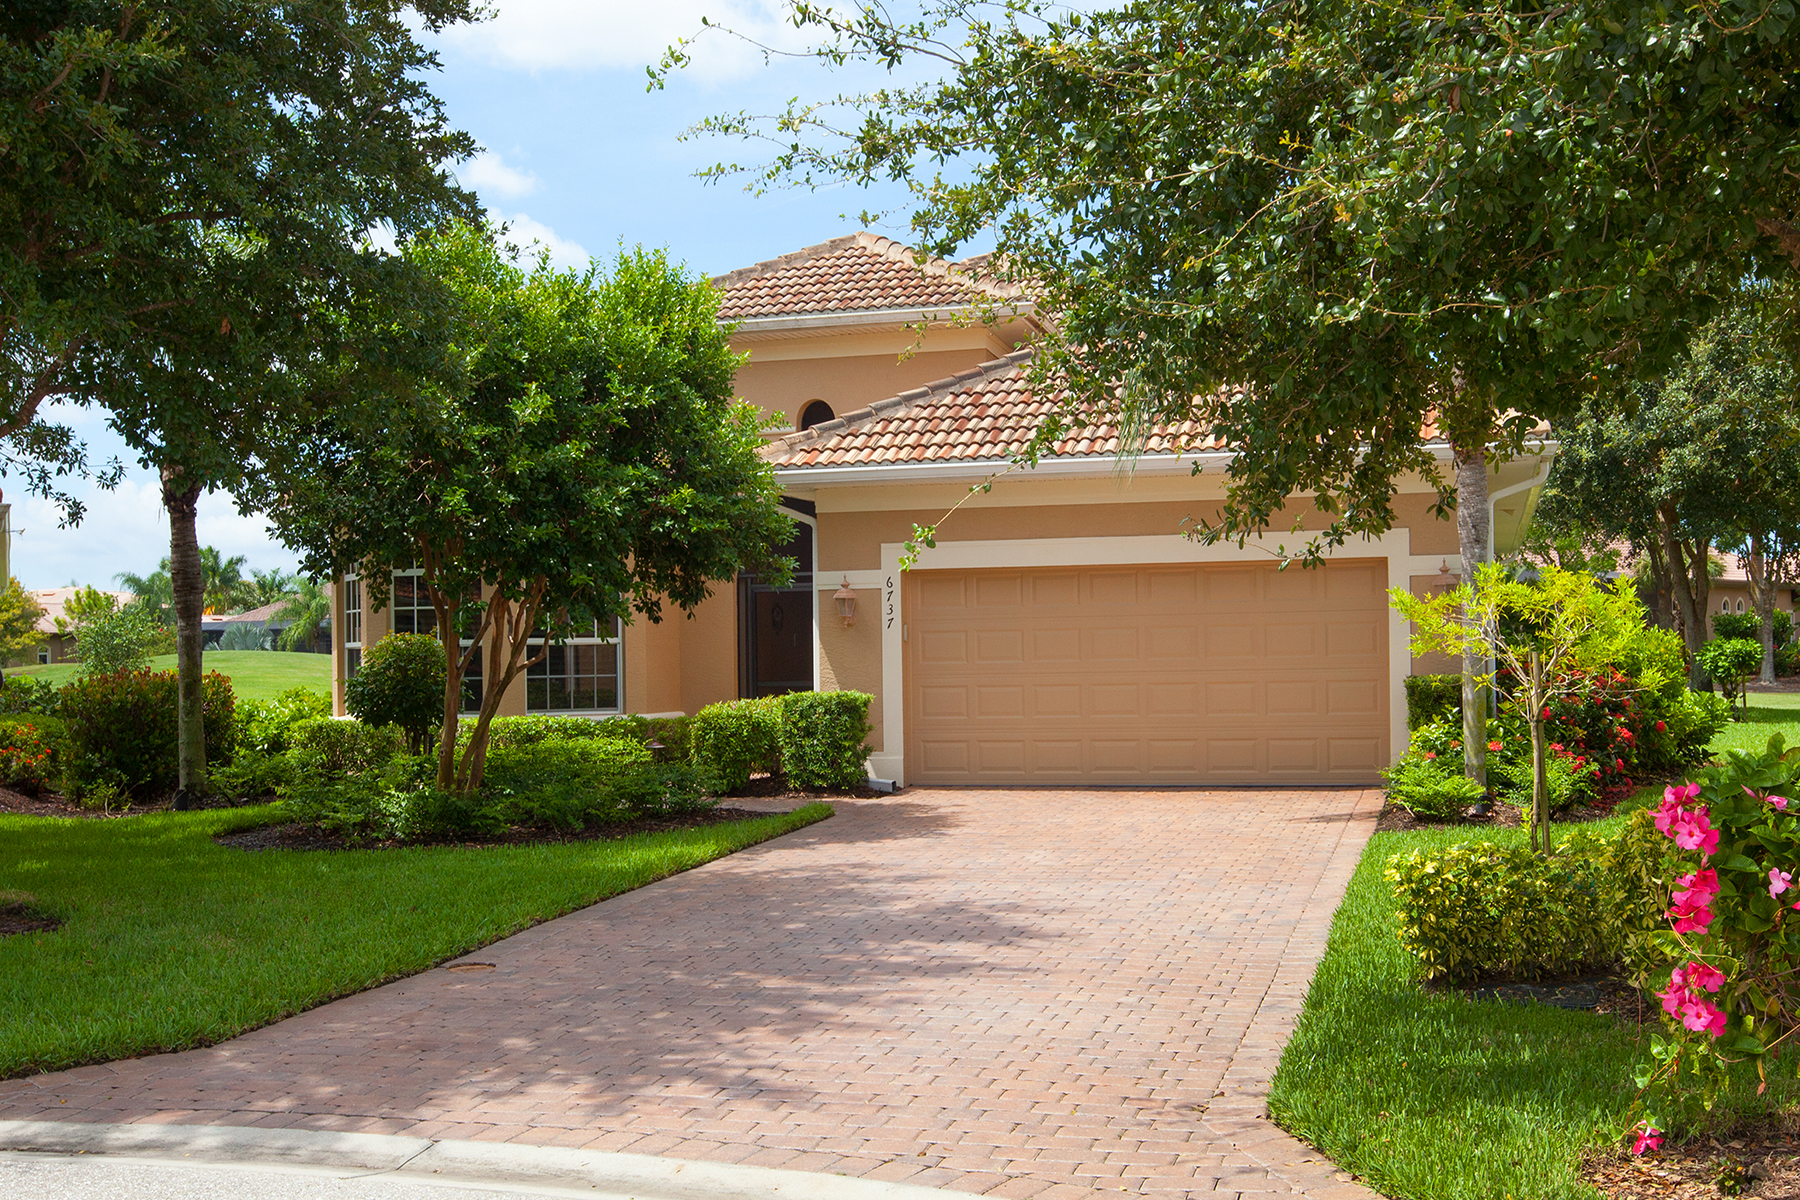 Single Family Home for Sale at LELY RESORT - MASTERS RESERVE 6737 Bent Grass Dr Naples, Florida 34113 United States